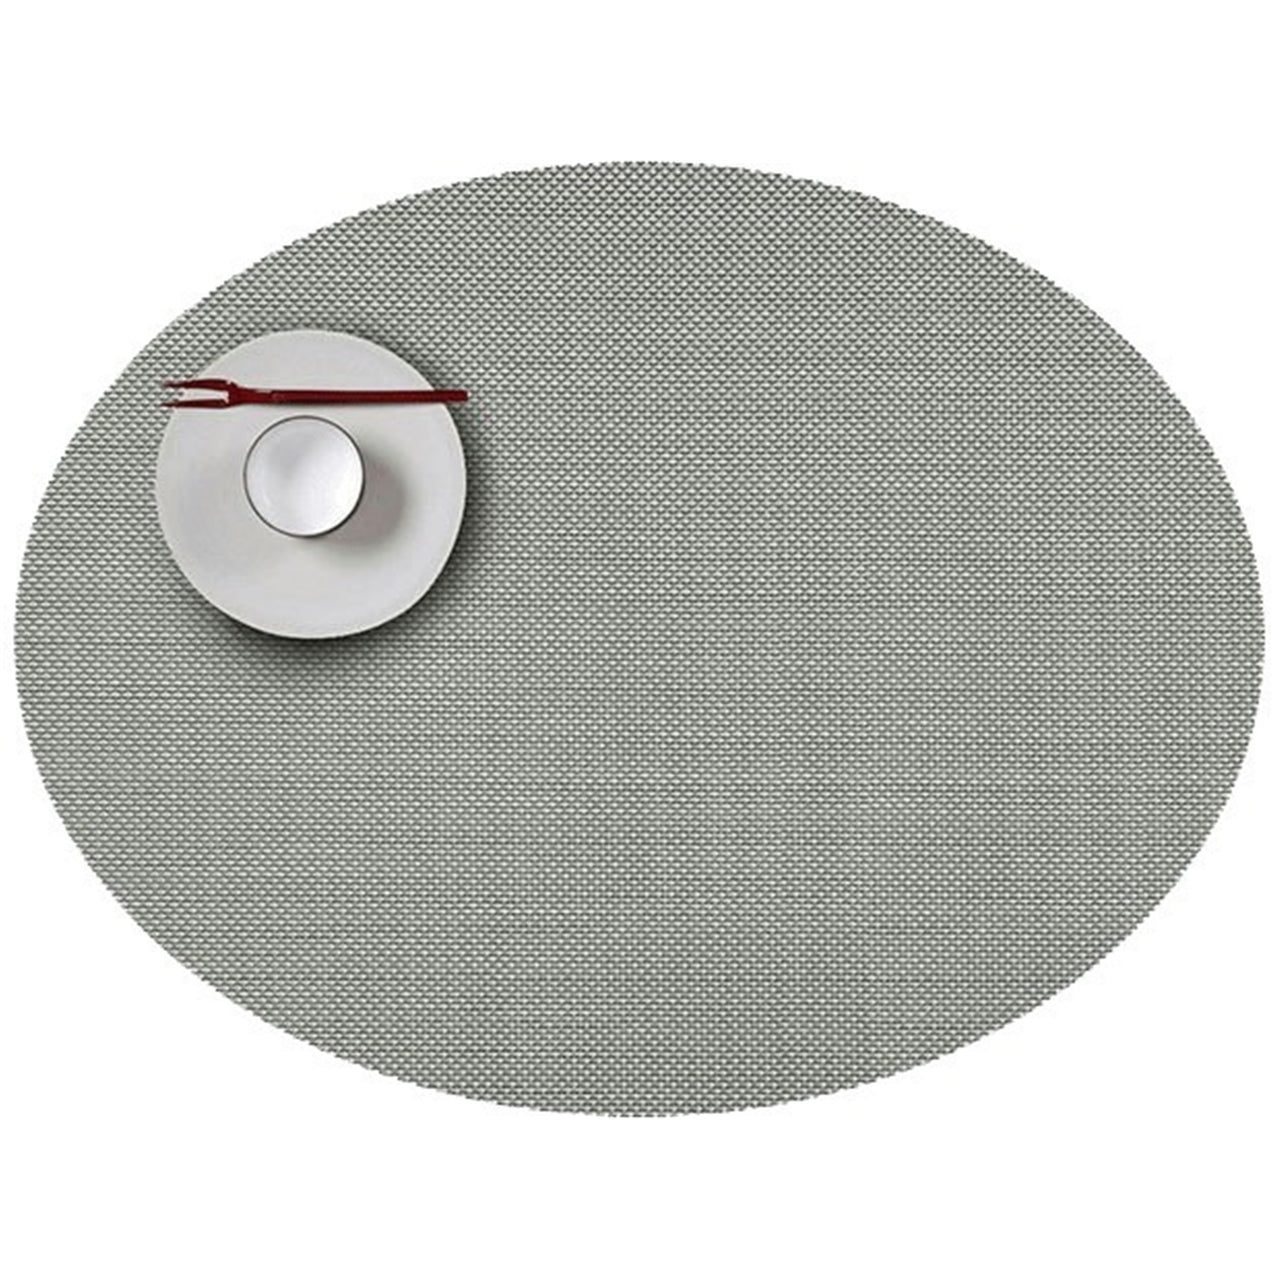 Mini Basketweave Round Placemats: Oval + Aloe